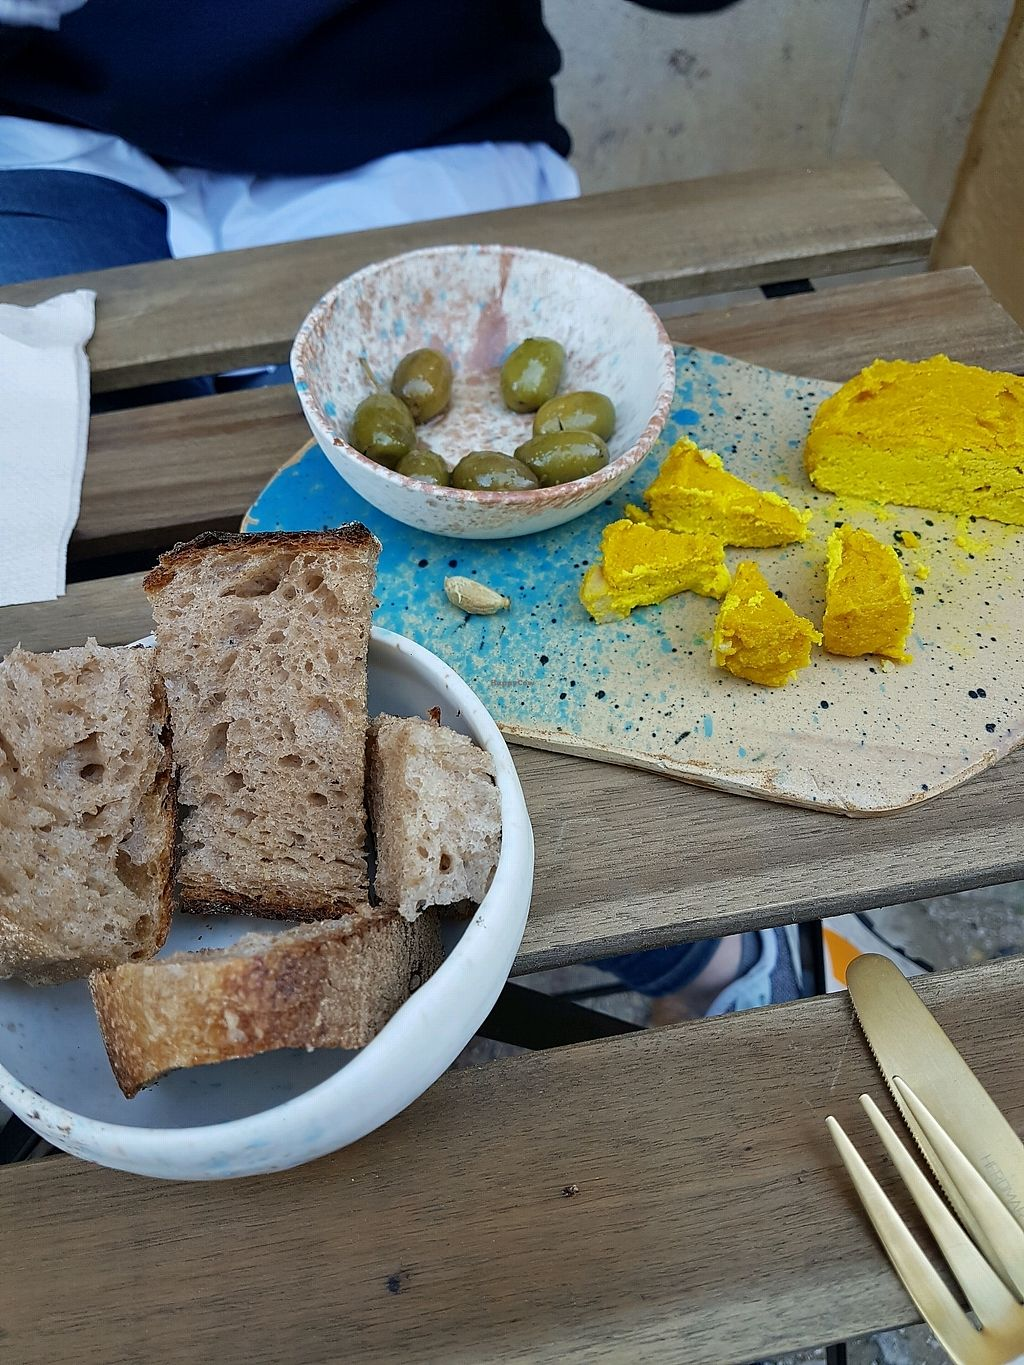 """Photo of My Mother's Daughters  by <a href=""""/members/profile/MichaelHenschel"""">MichaelHenschel</a> <br/>Delicious bread, olives, and Gary <br/> December 17, 2017  - <a href='/contact/abuse/image/105170/336553'>Report</a>"""